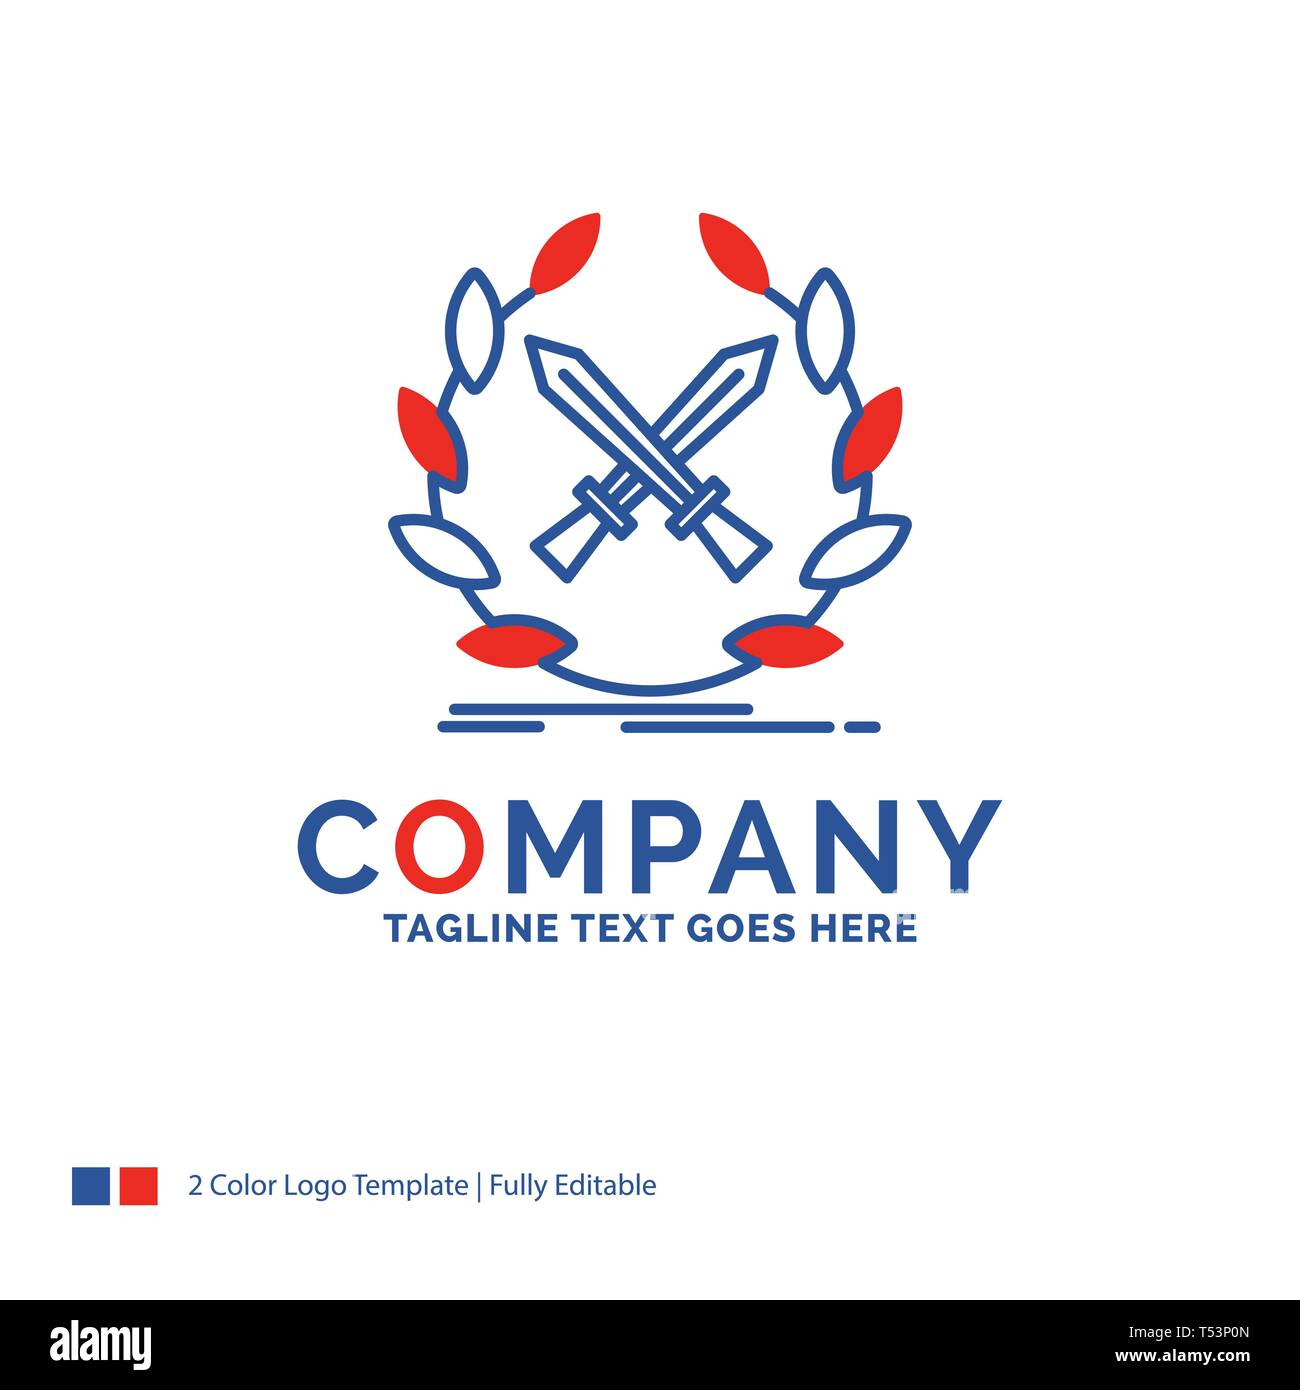 Company Name Logo Design For battle, emblem, game, label, swords. Blue and red Brand Name Design with place for Tagline. Abstract Creative Logo templa - Stock Image